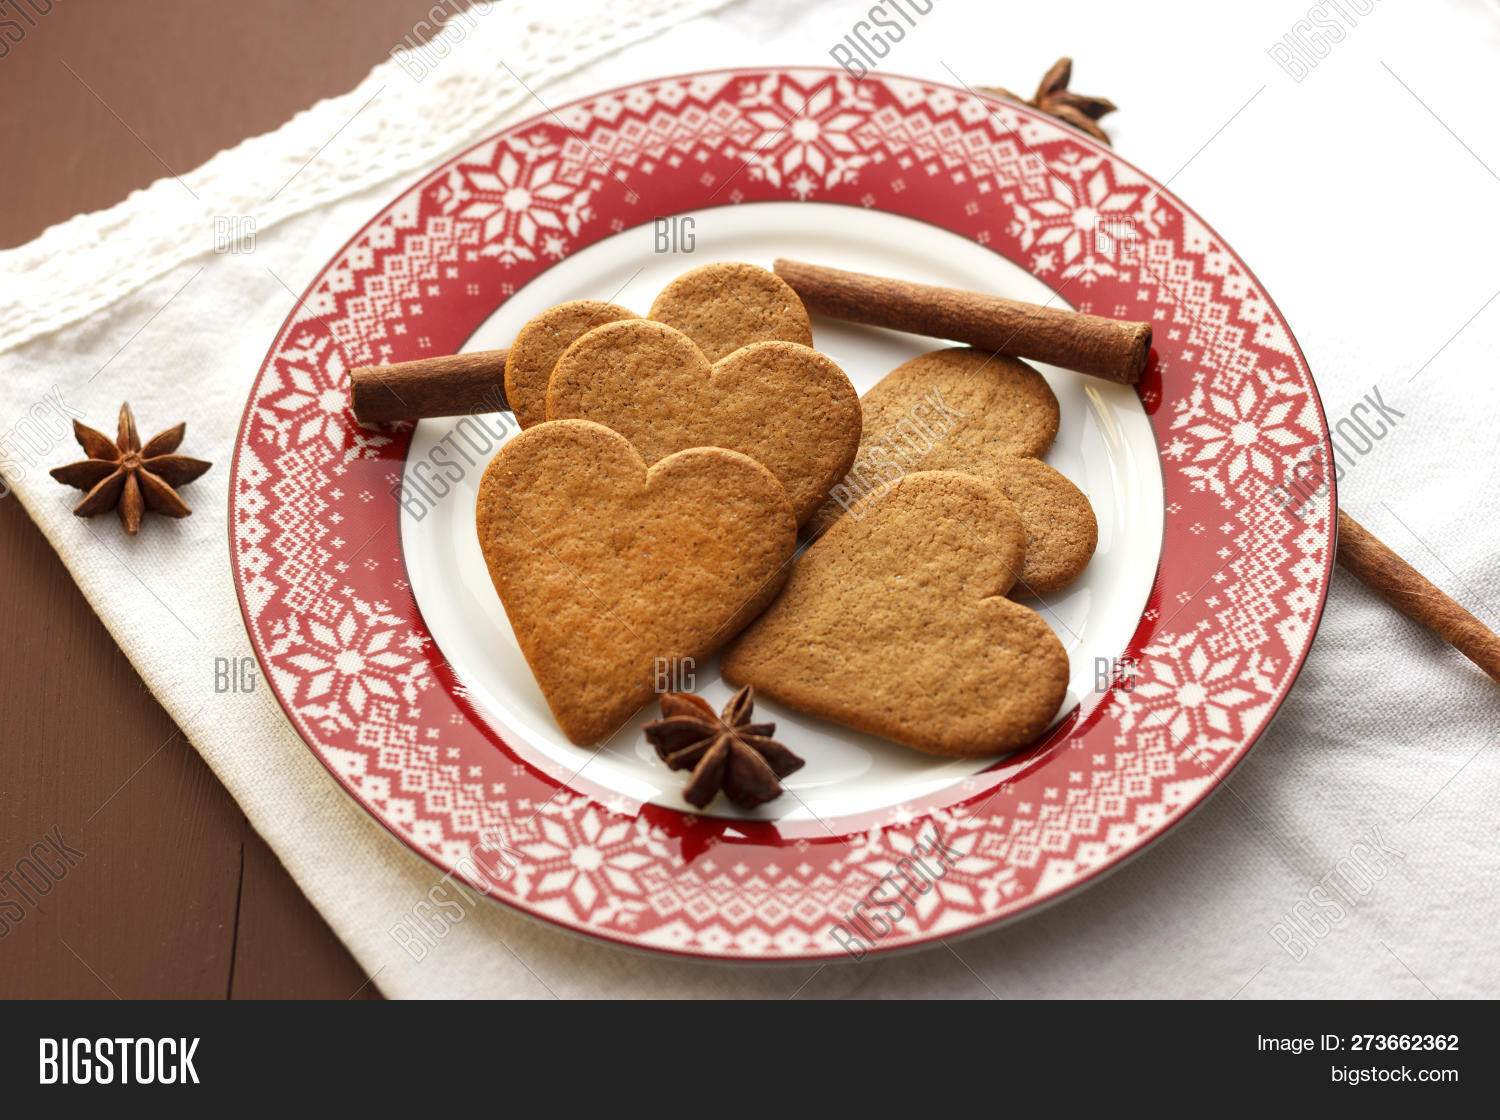 Gingerbread Heart Image Photo Free Trial Bigstock